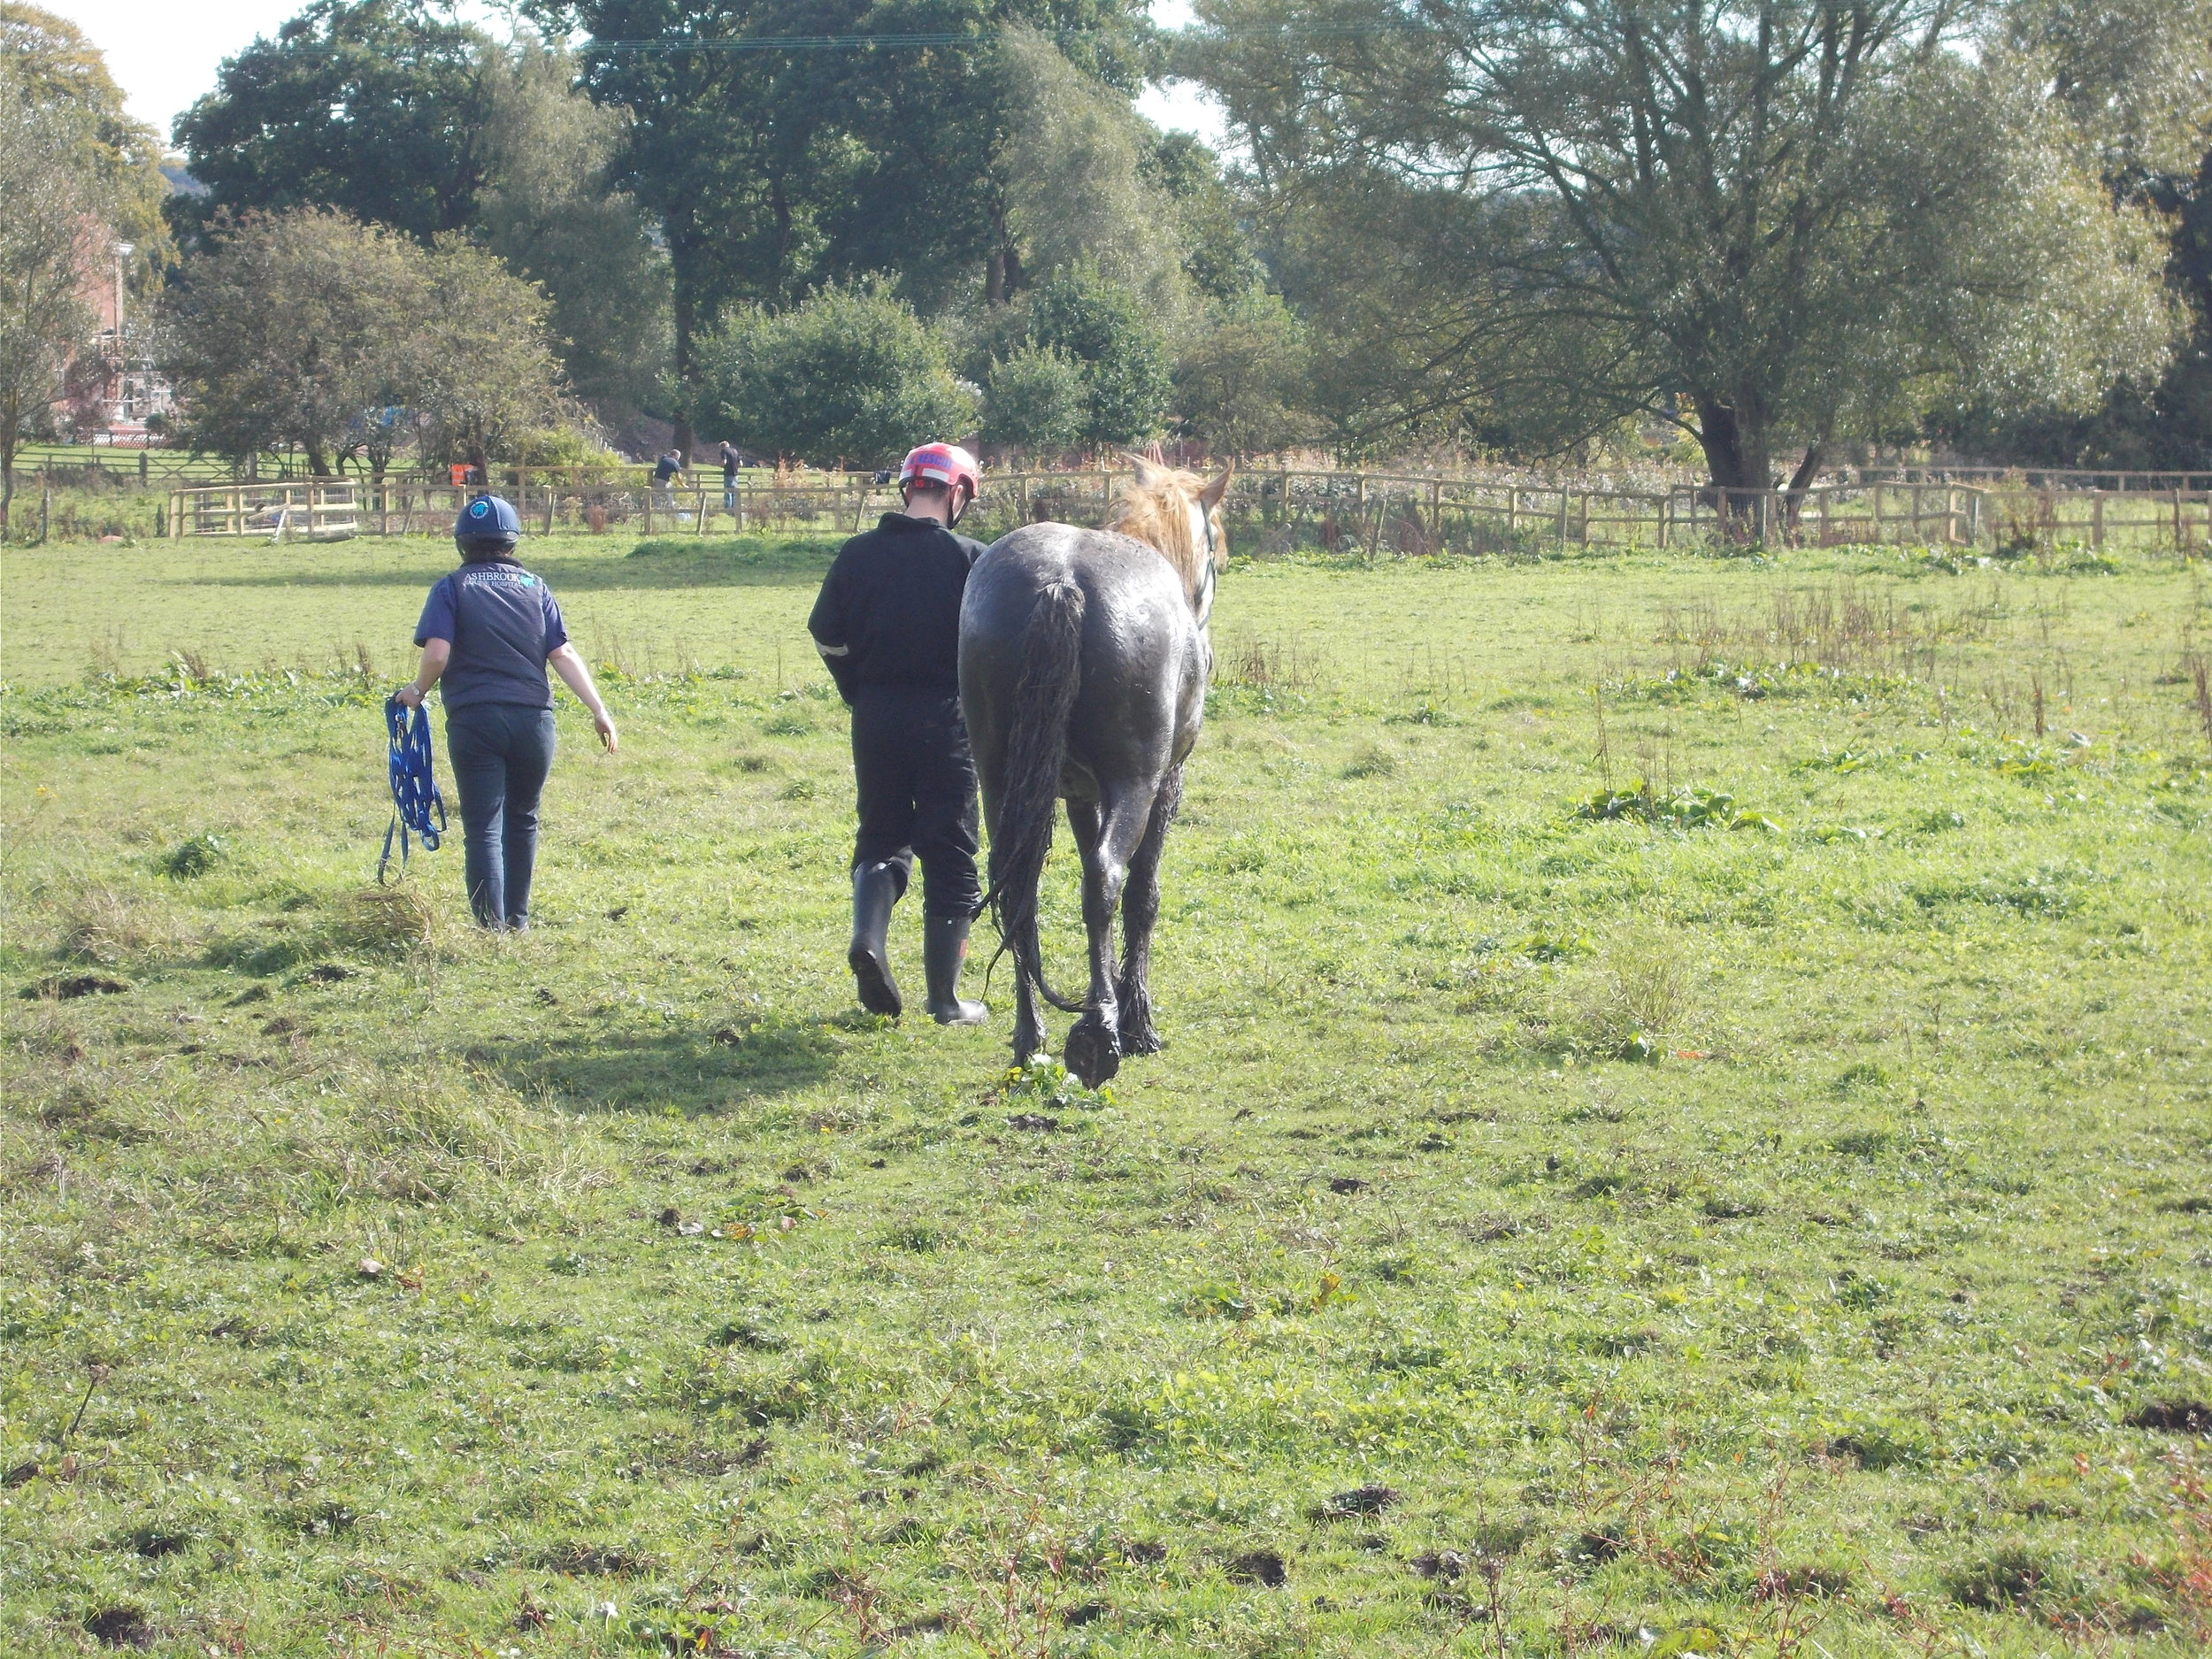 Rescuers helped the horse walk away from the scene (Pic: Cheshire Fire and Rescue Service)